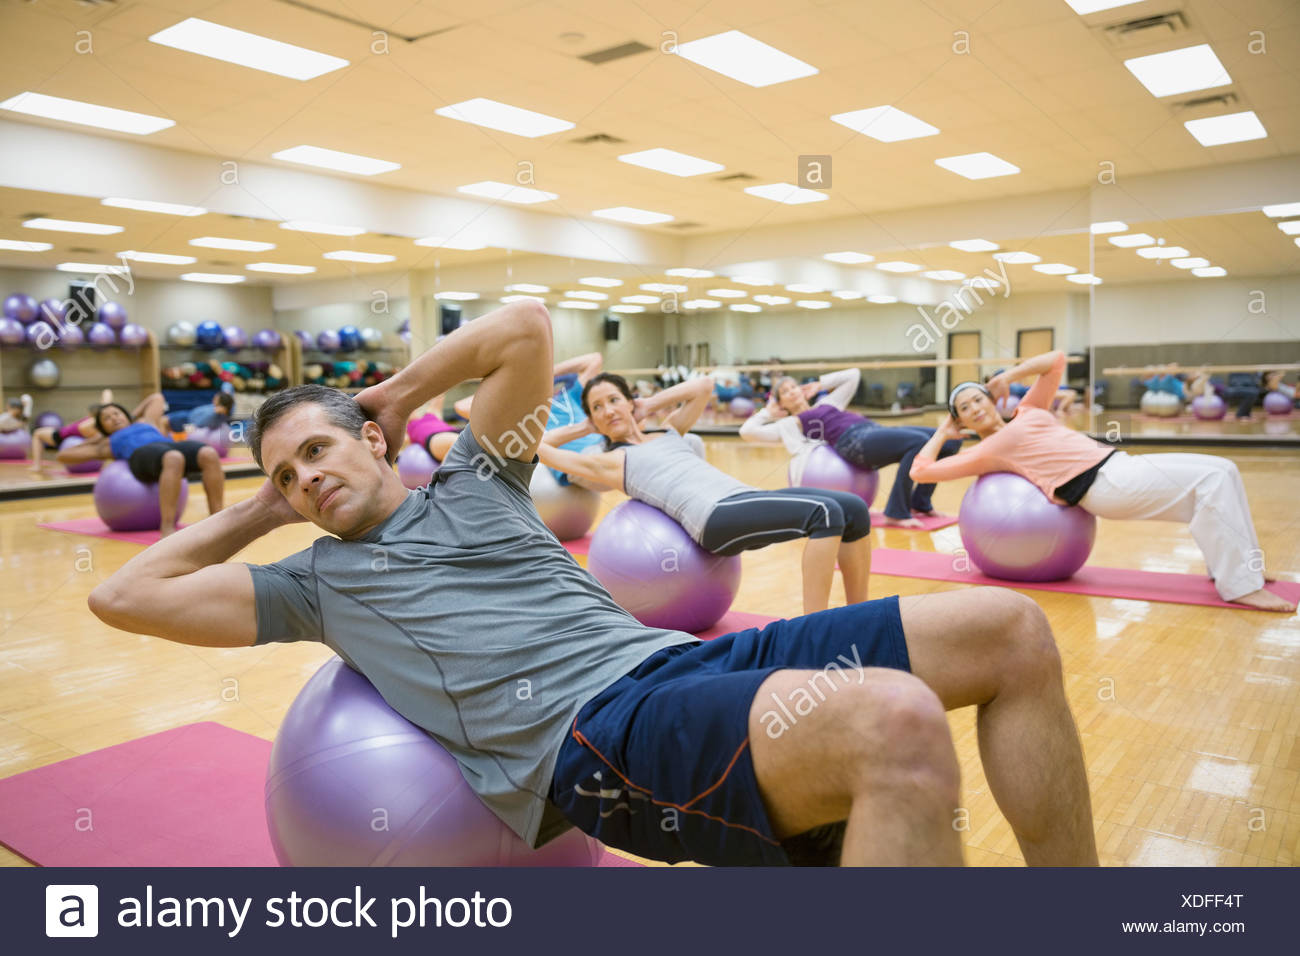 Group on fitness balls in exercise class - Stock Image